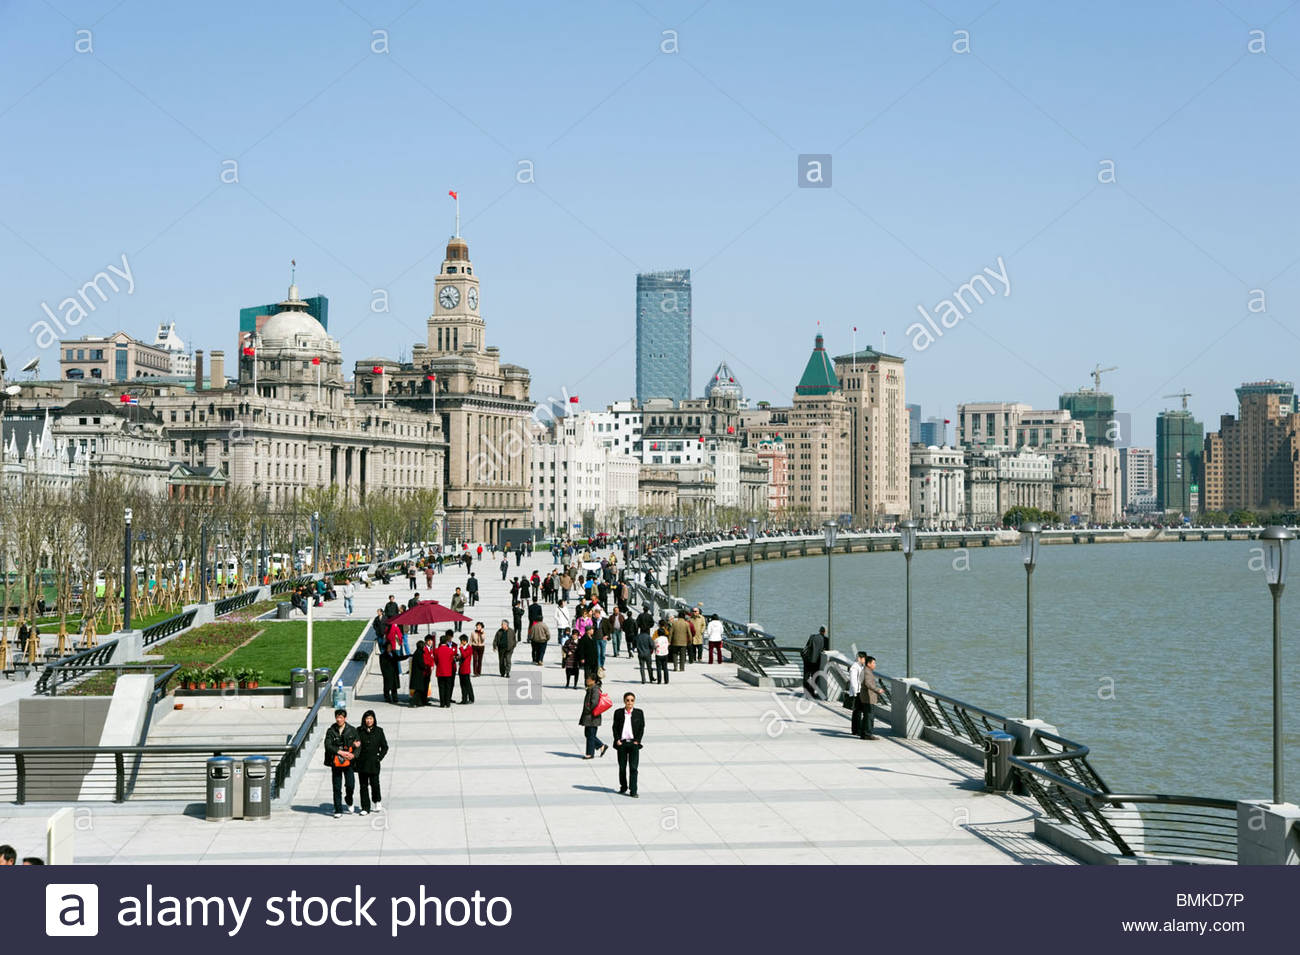 La promenade du Bund, Shanghai, Chine Photo Stock